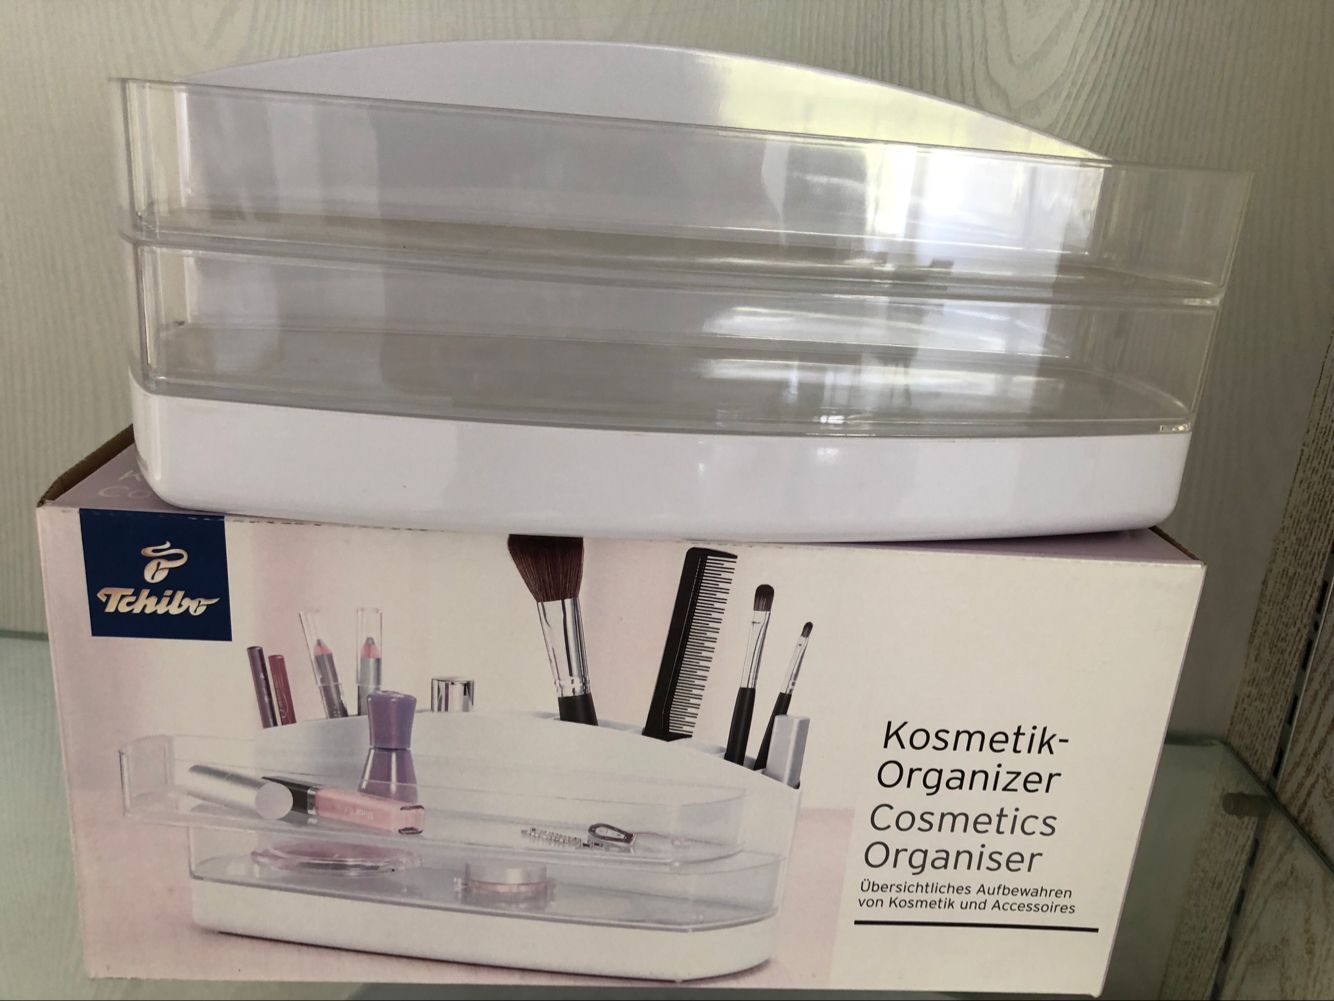 Cosmetics Organiser-ZM-PH561